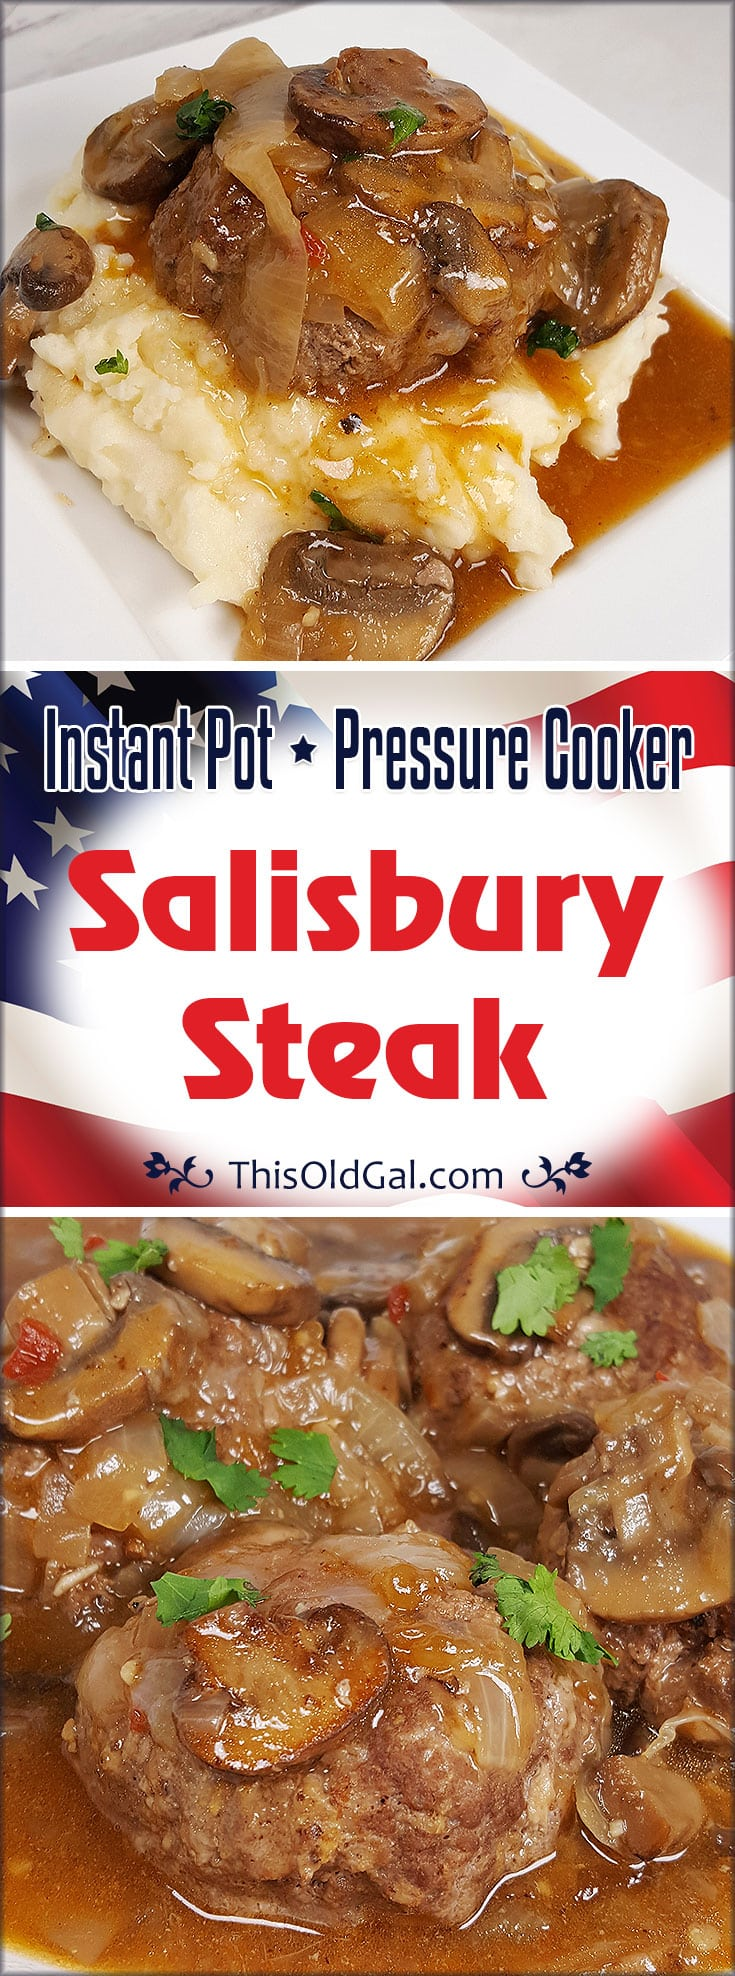 Pressure Cooker Salisbury Steak w/Onion Mushroom Gravy